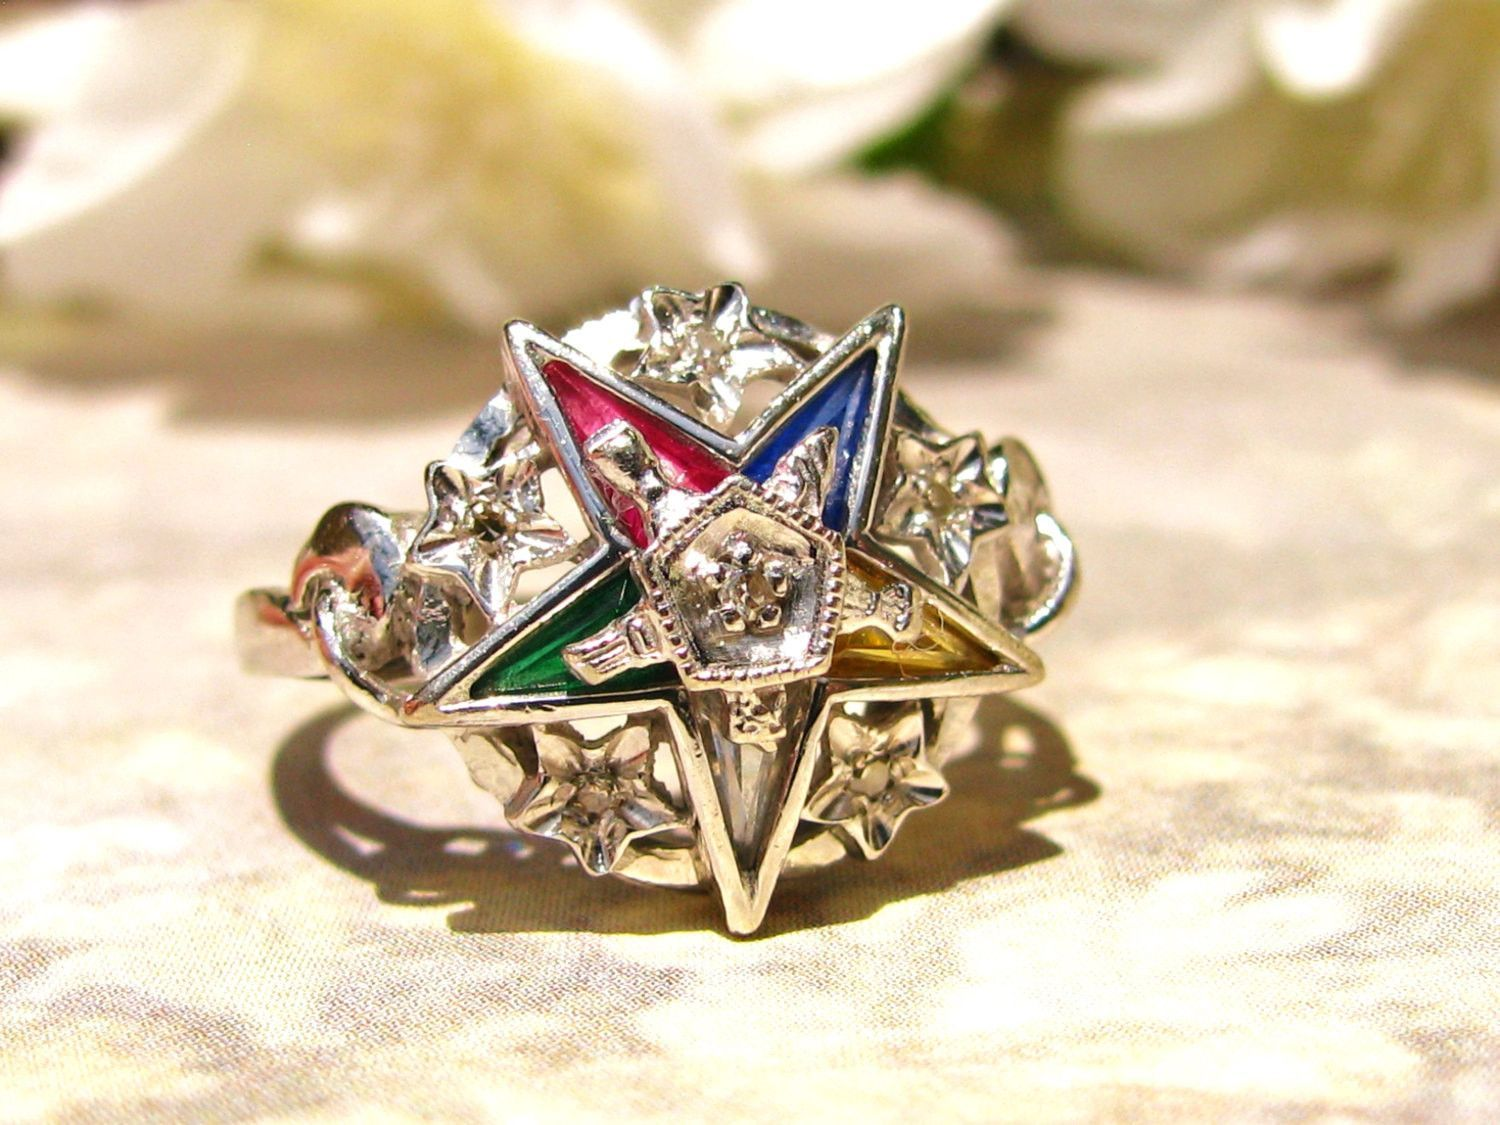 Vintage Order Of The Eastern Star Diamond Ring Ladies Masonic Ring Synthetic Multicolored Stones 10k Whit Ladies Diamond Rings White Gold Diamonds Diamond Star